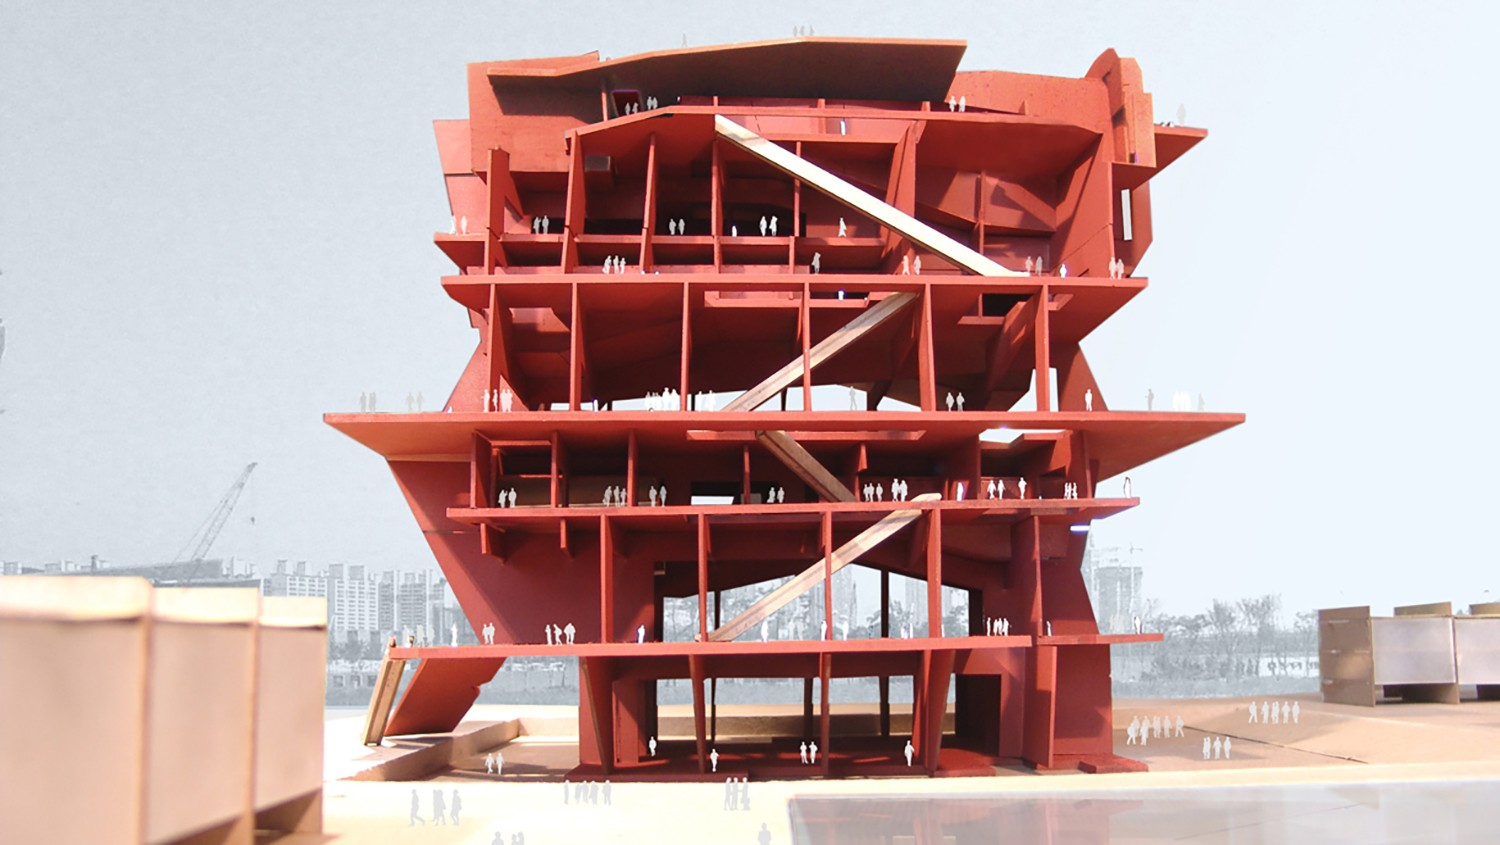 https://stevenholl.sfo2.digitaloceanspaces.com/uploads/projects/project-images/StevenHollArchitects_Busan_CollageofPlaza_WH.jpg